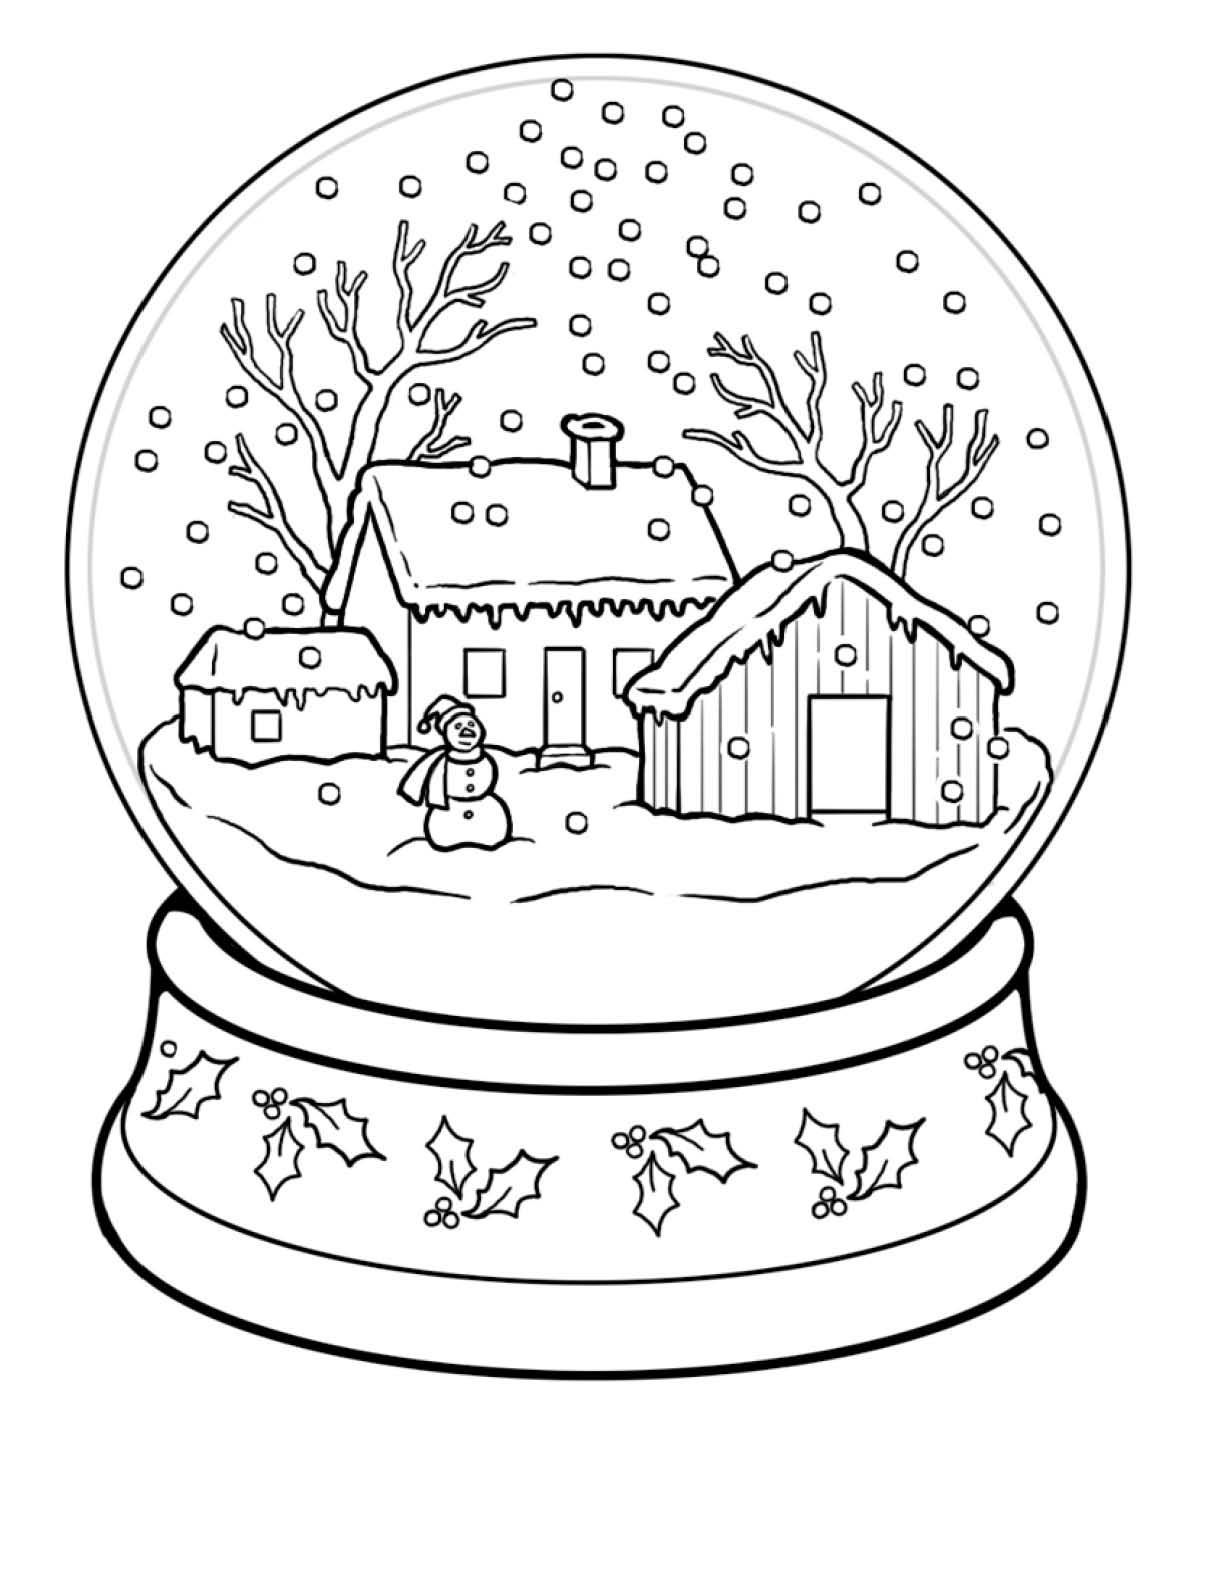 pen and wash drawings christmas bauble  Bing images  Found on Bing from printablefreecolo